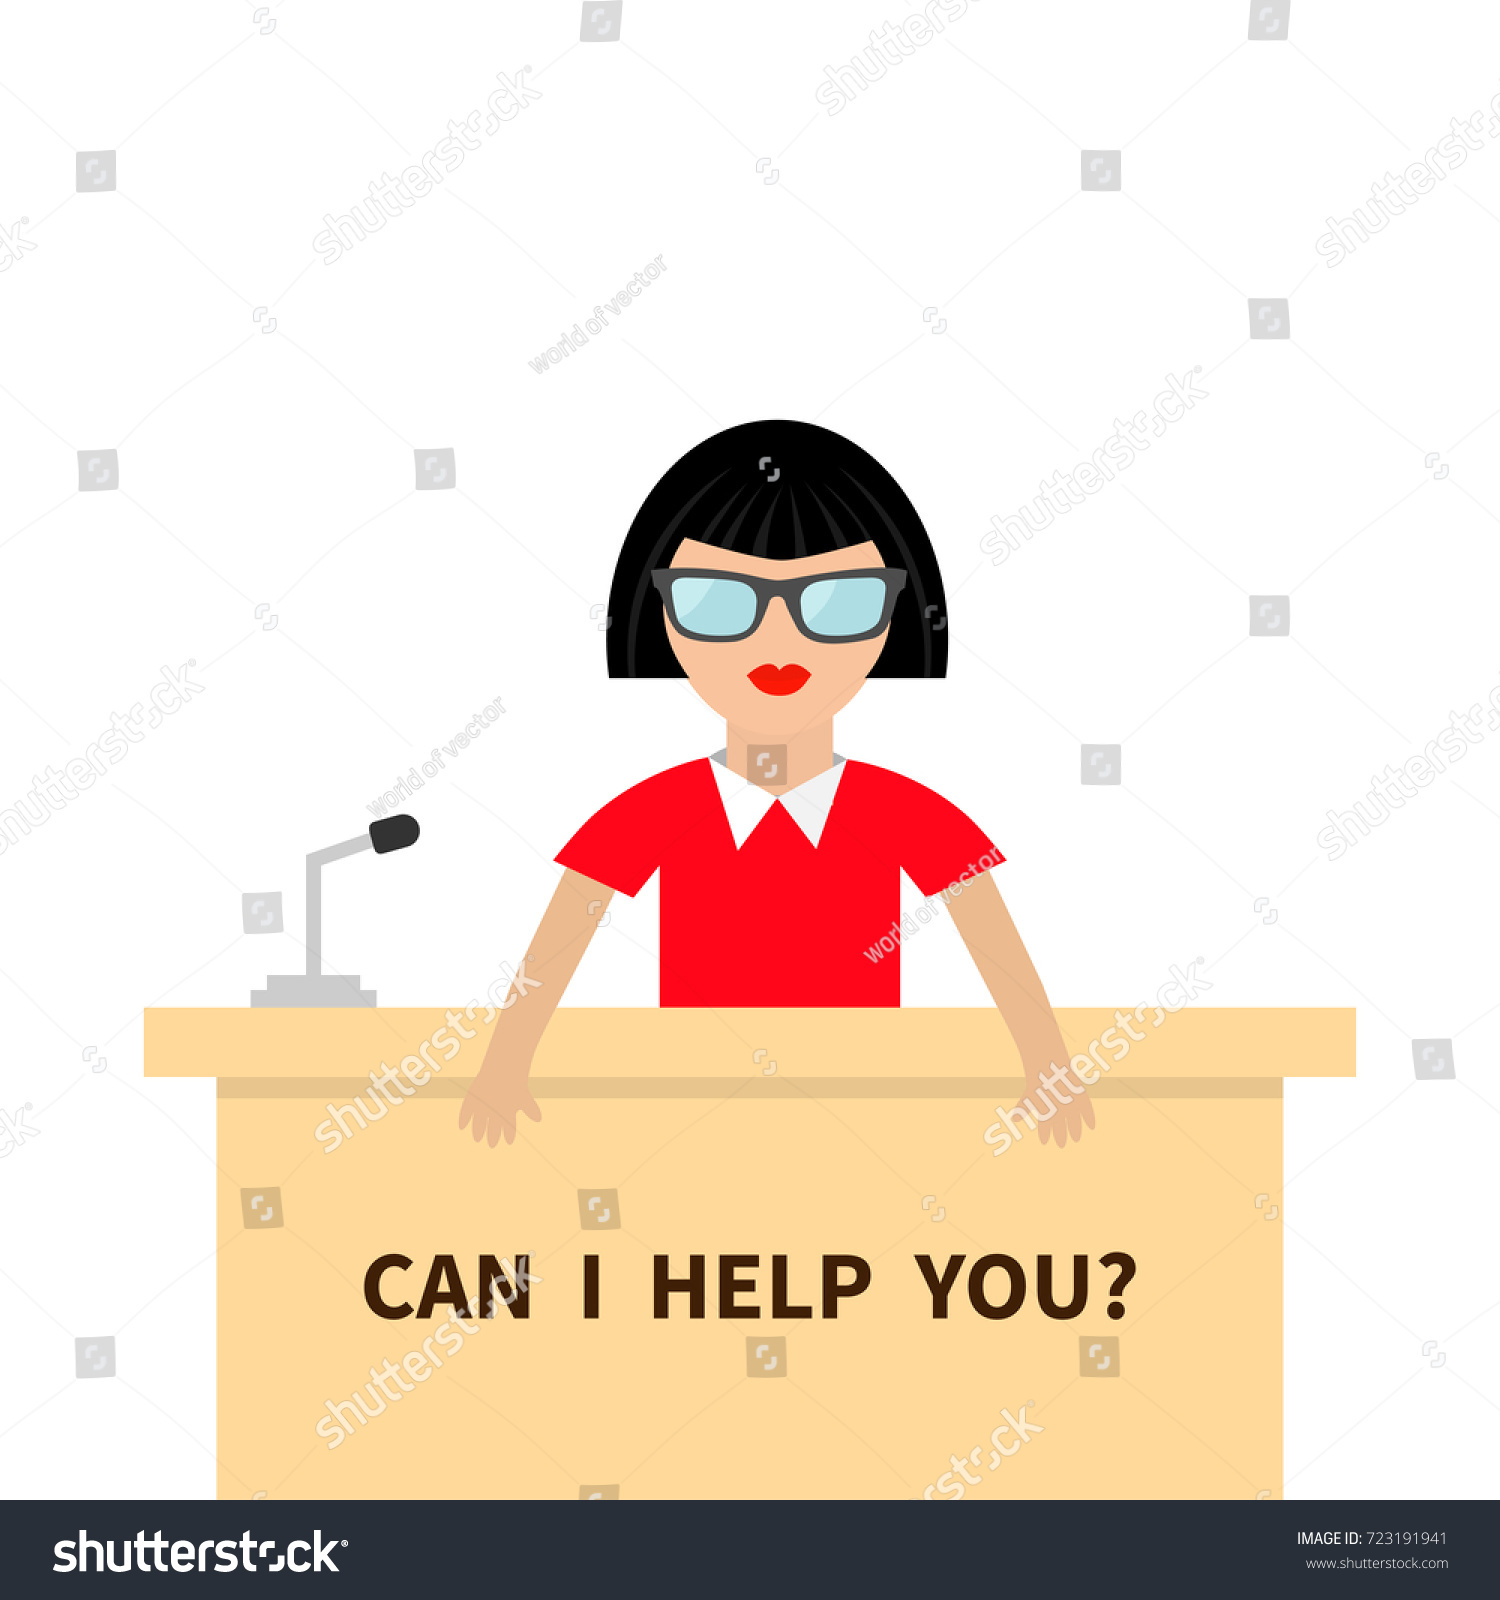 can help you women female people stock vector royalty free